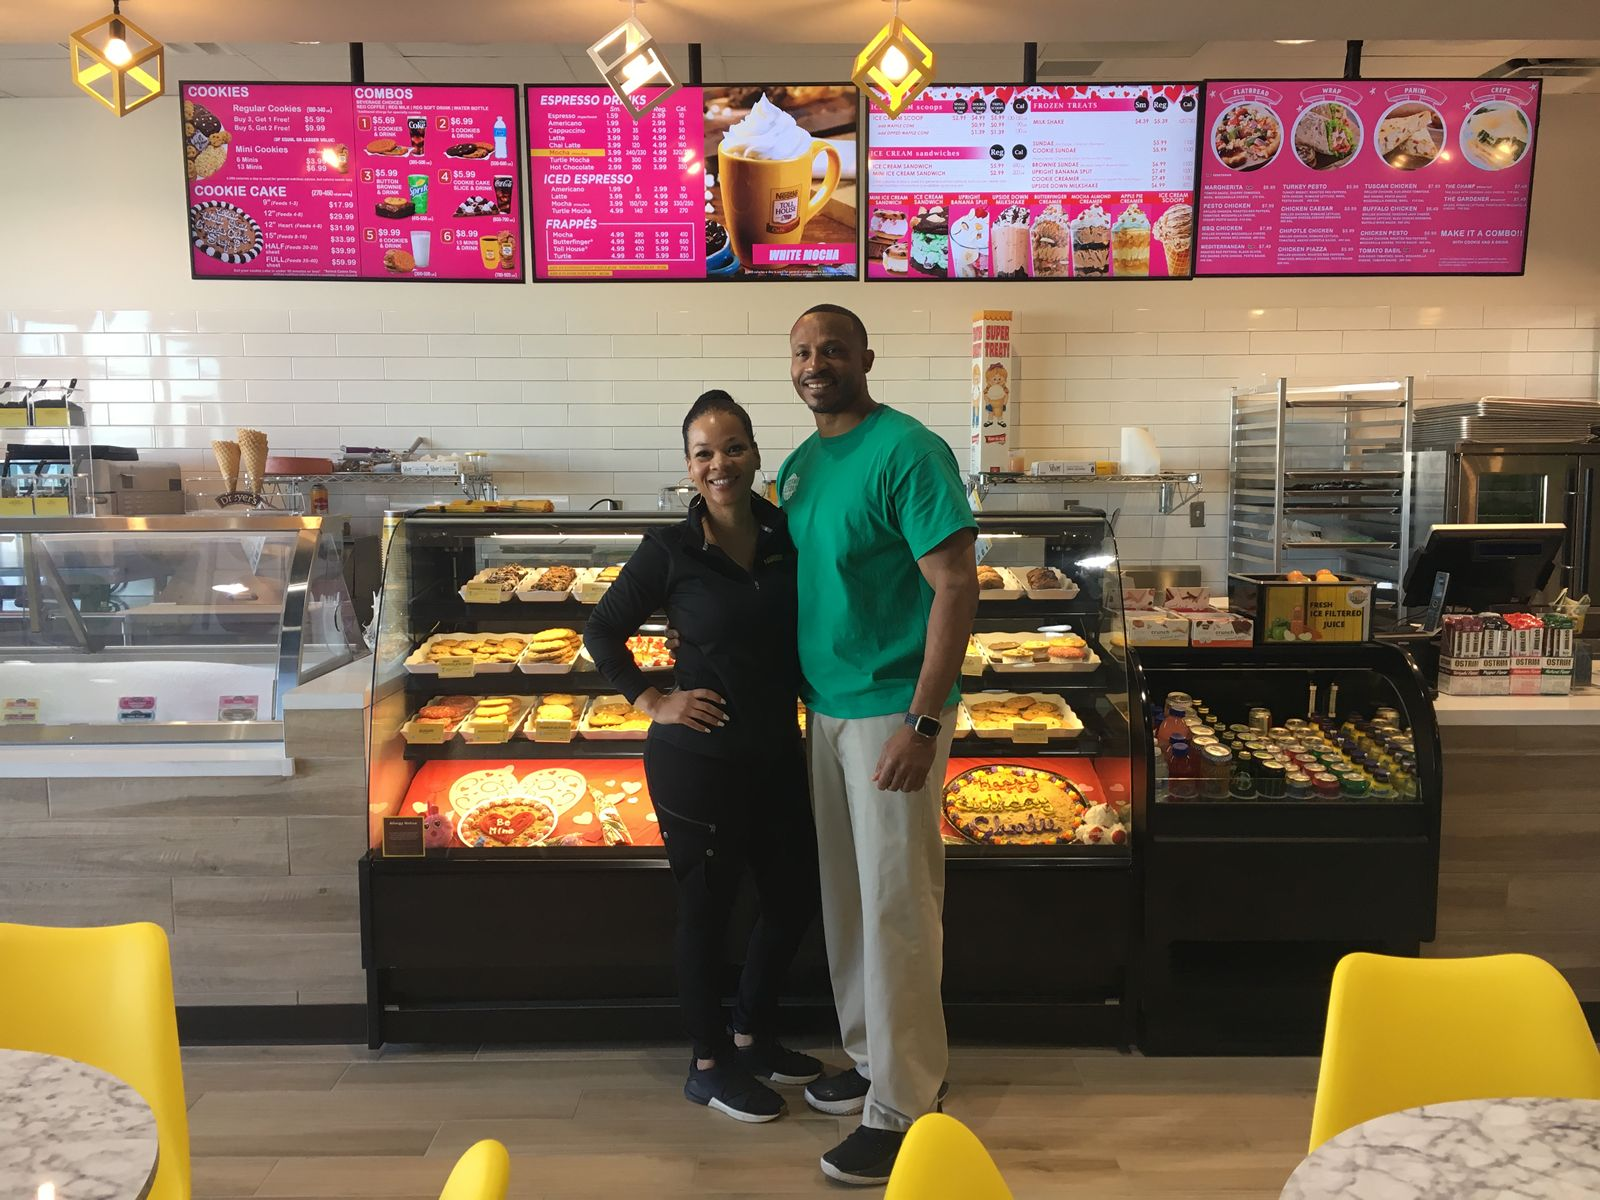 Former Dallas Cowboys Player Opens Second Nestlé Toll House Café By Chip in Mansfield